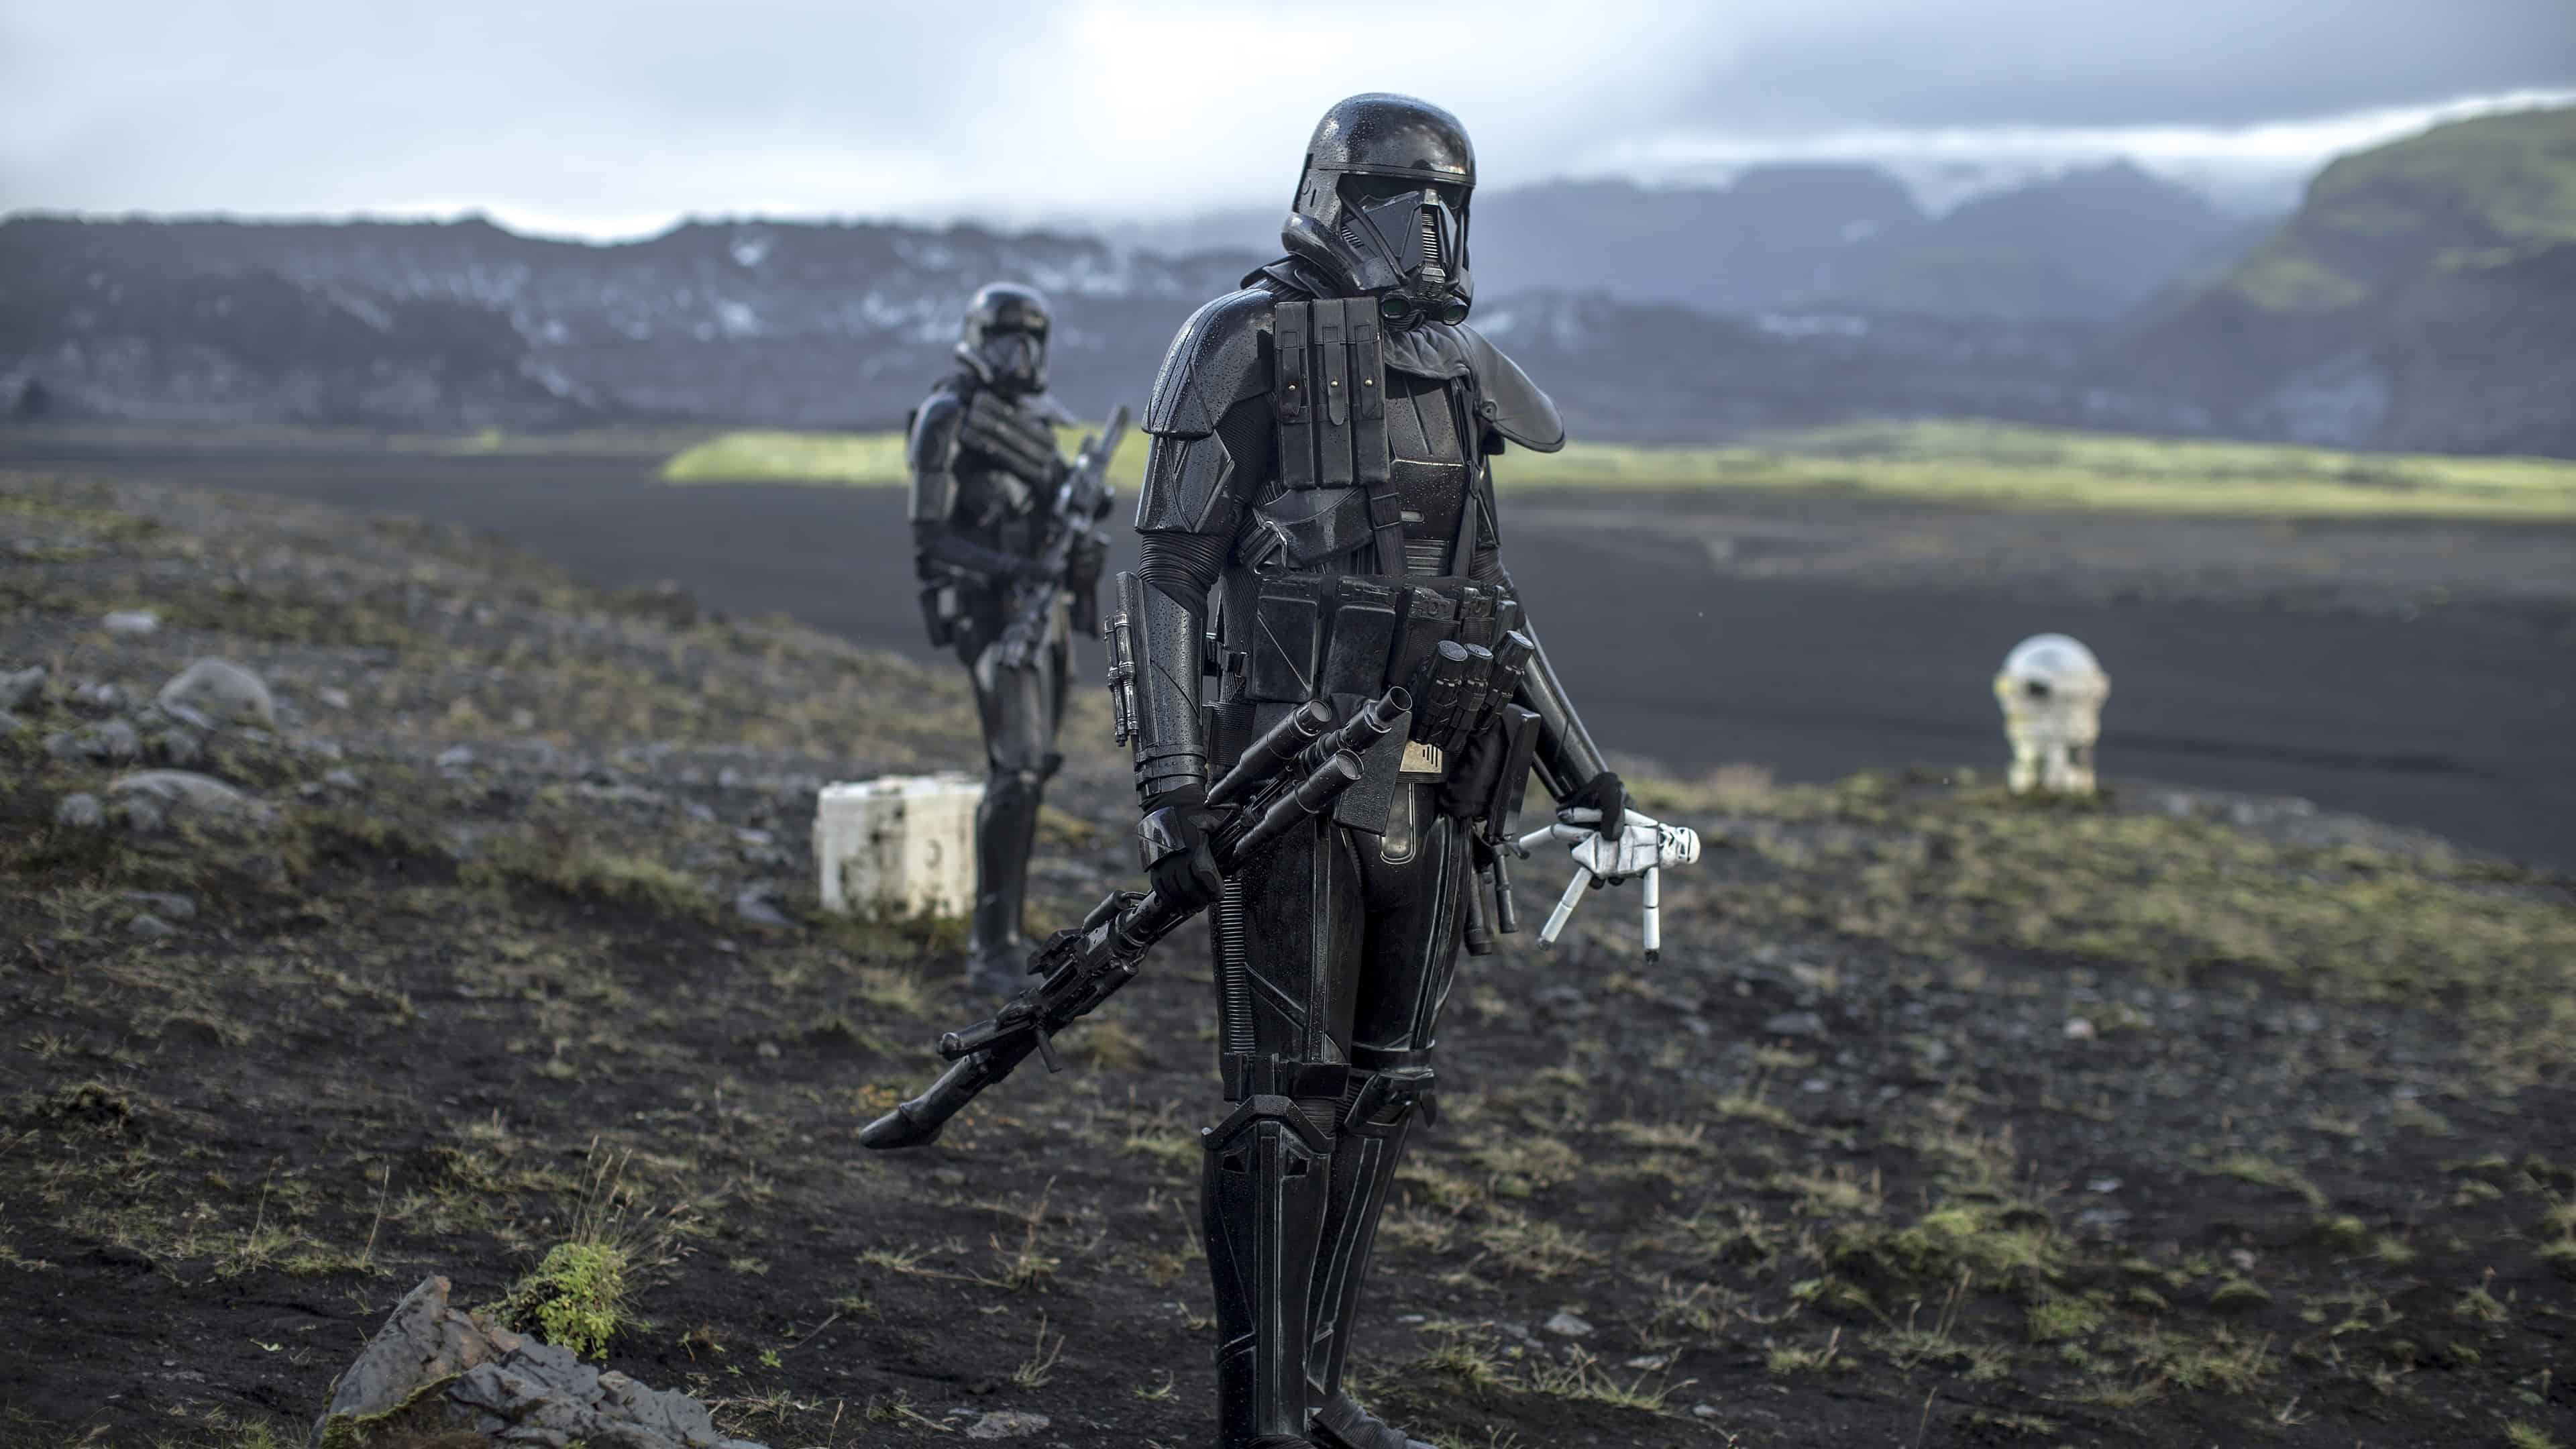 Rogue One A Star Wars Story Trooper Uhd 4k Wallpaper Stormtrooper Star Wars Wallpaper 4k 3840x2160 Wallpaper Teahub Io